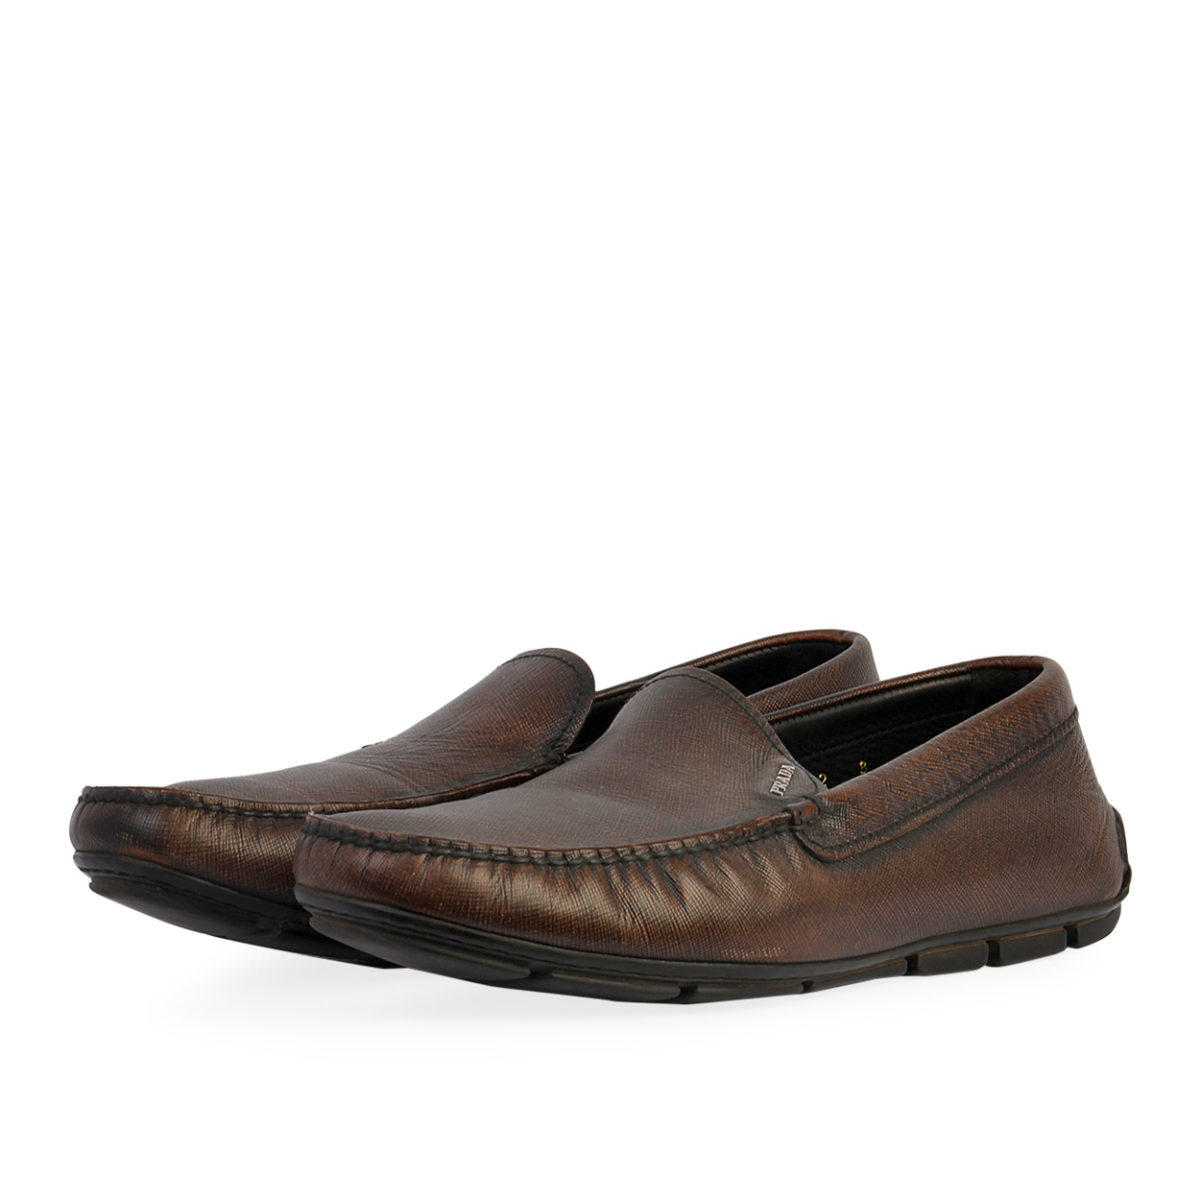 fa2758b0e5 PRADA Leather Men's Moccasins Driving Loafers Brown - S: 42 (8)